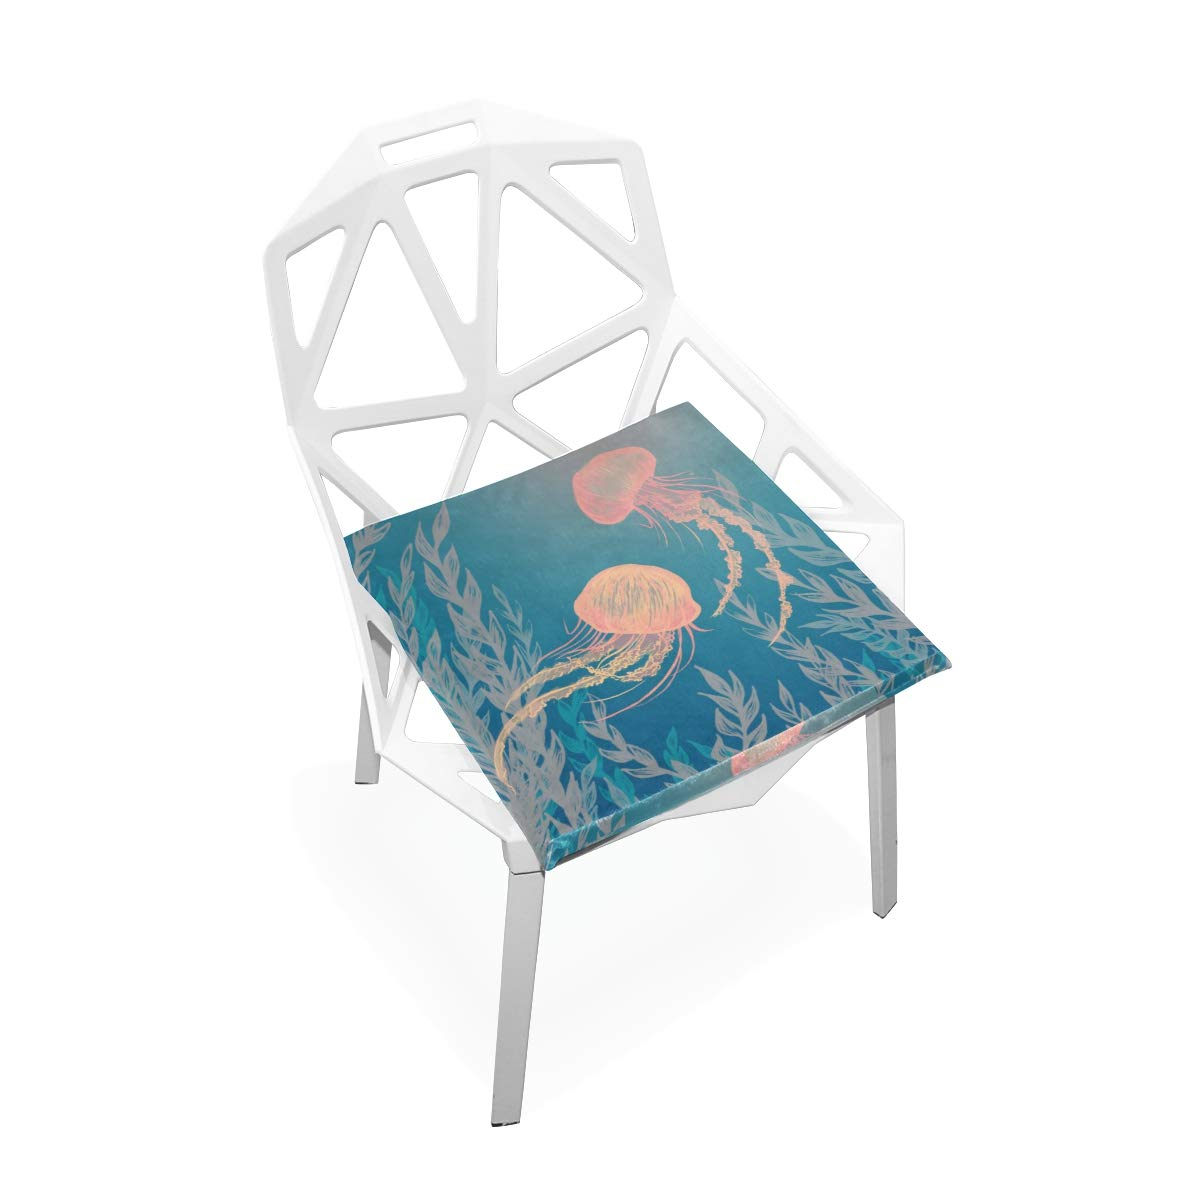 TSWEETHOME Comfort Memory Foam Square Chair Cushion Seat Cushion Seaweed Jellyfish Chair Pads Hardwood Floors Dining Chairs Office Chairs